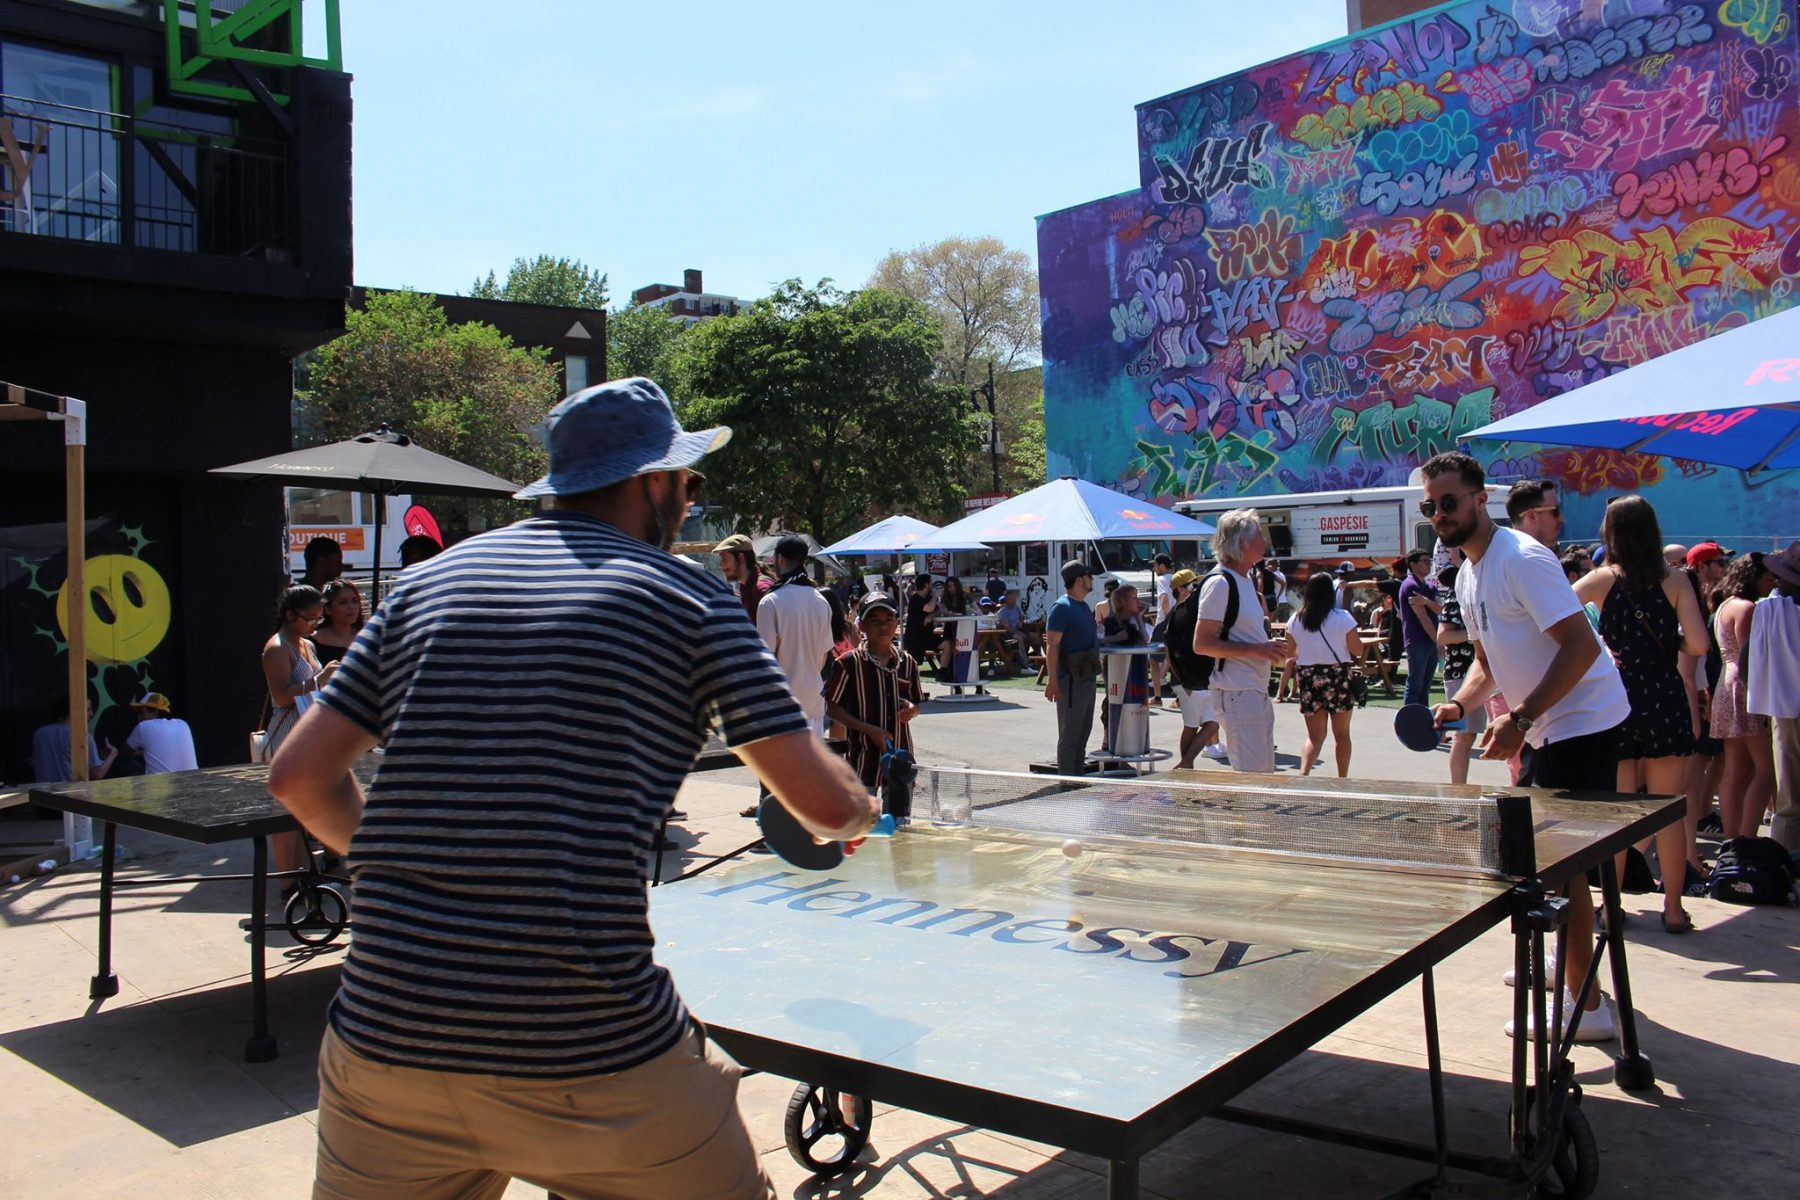 mural-festival-arts-montreal-ping-pong